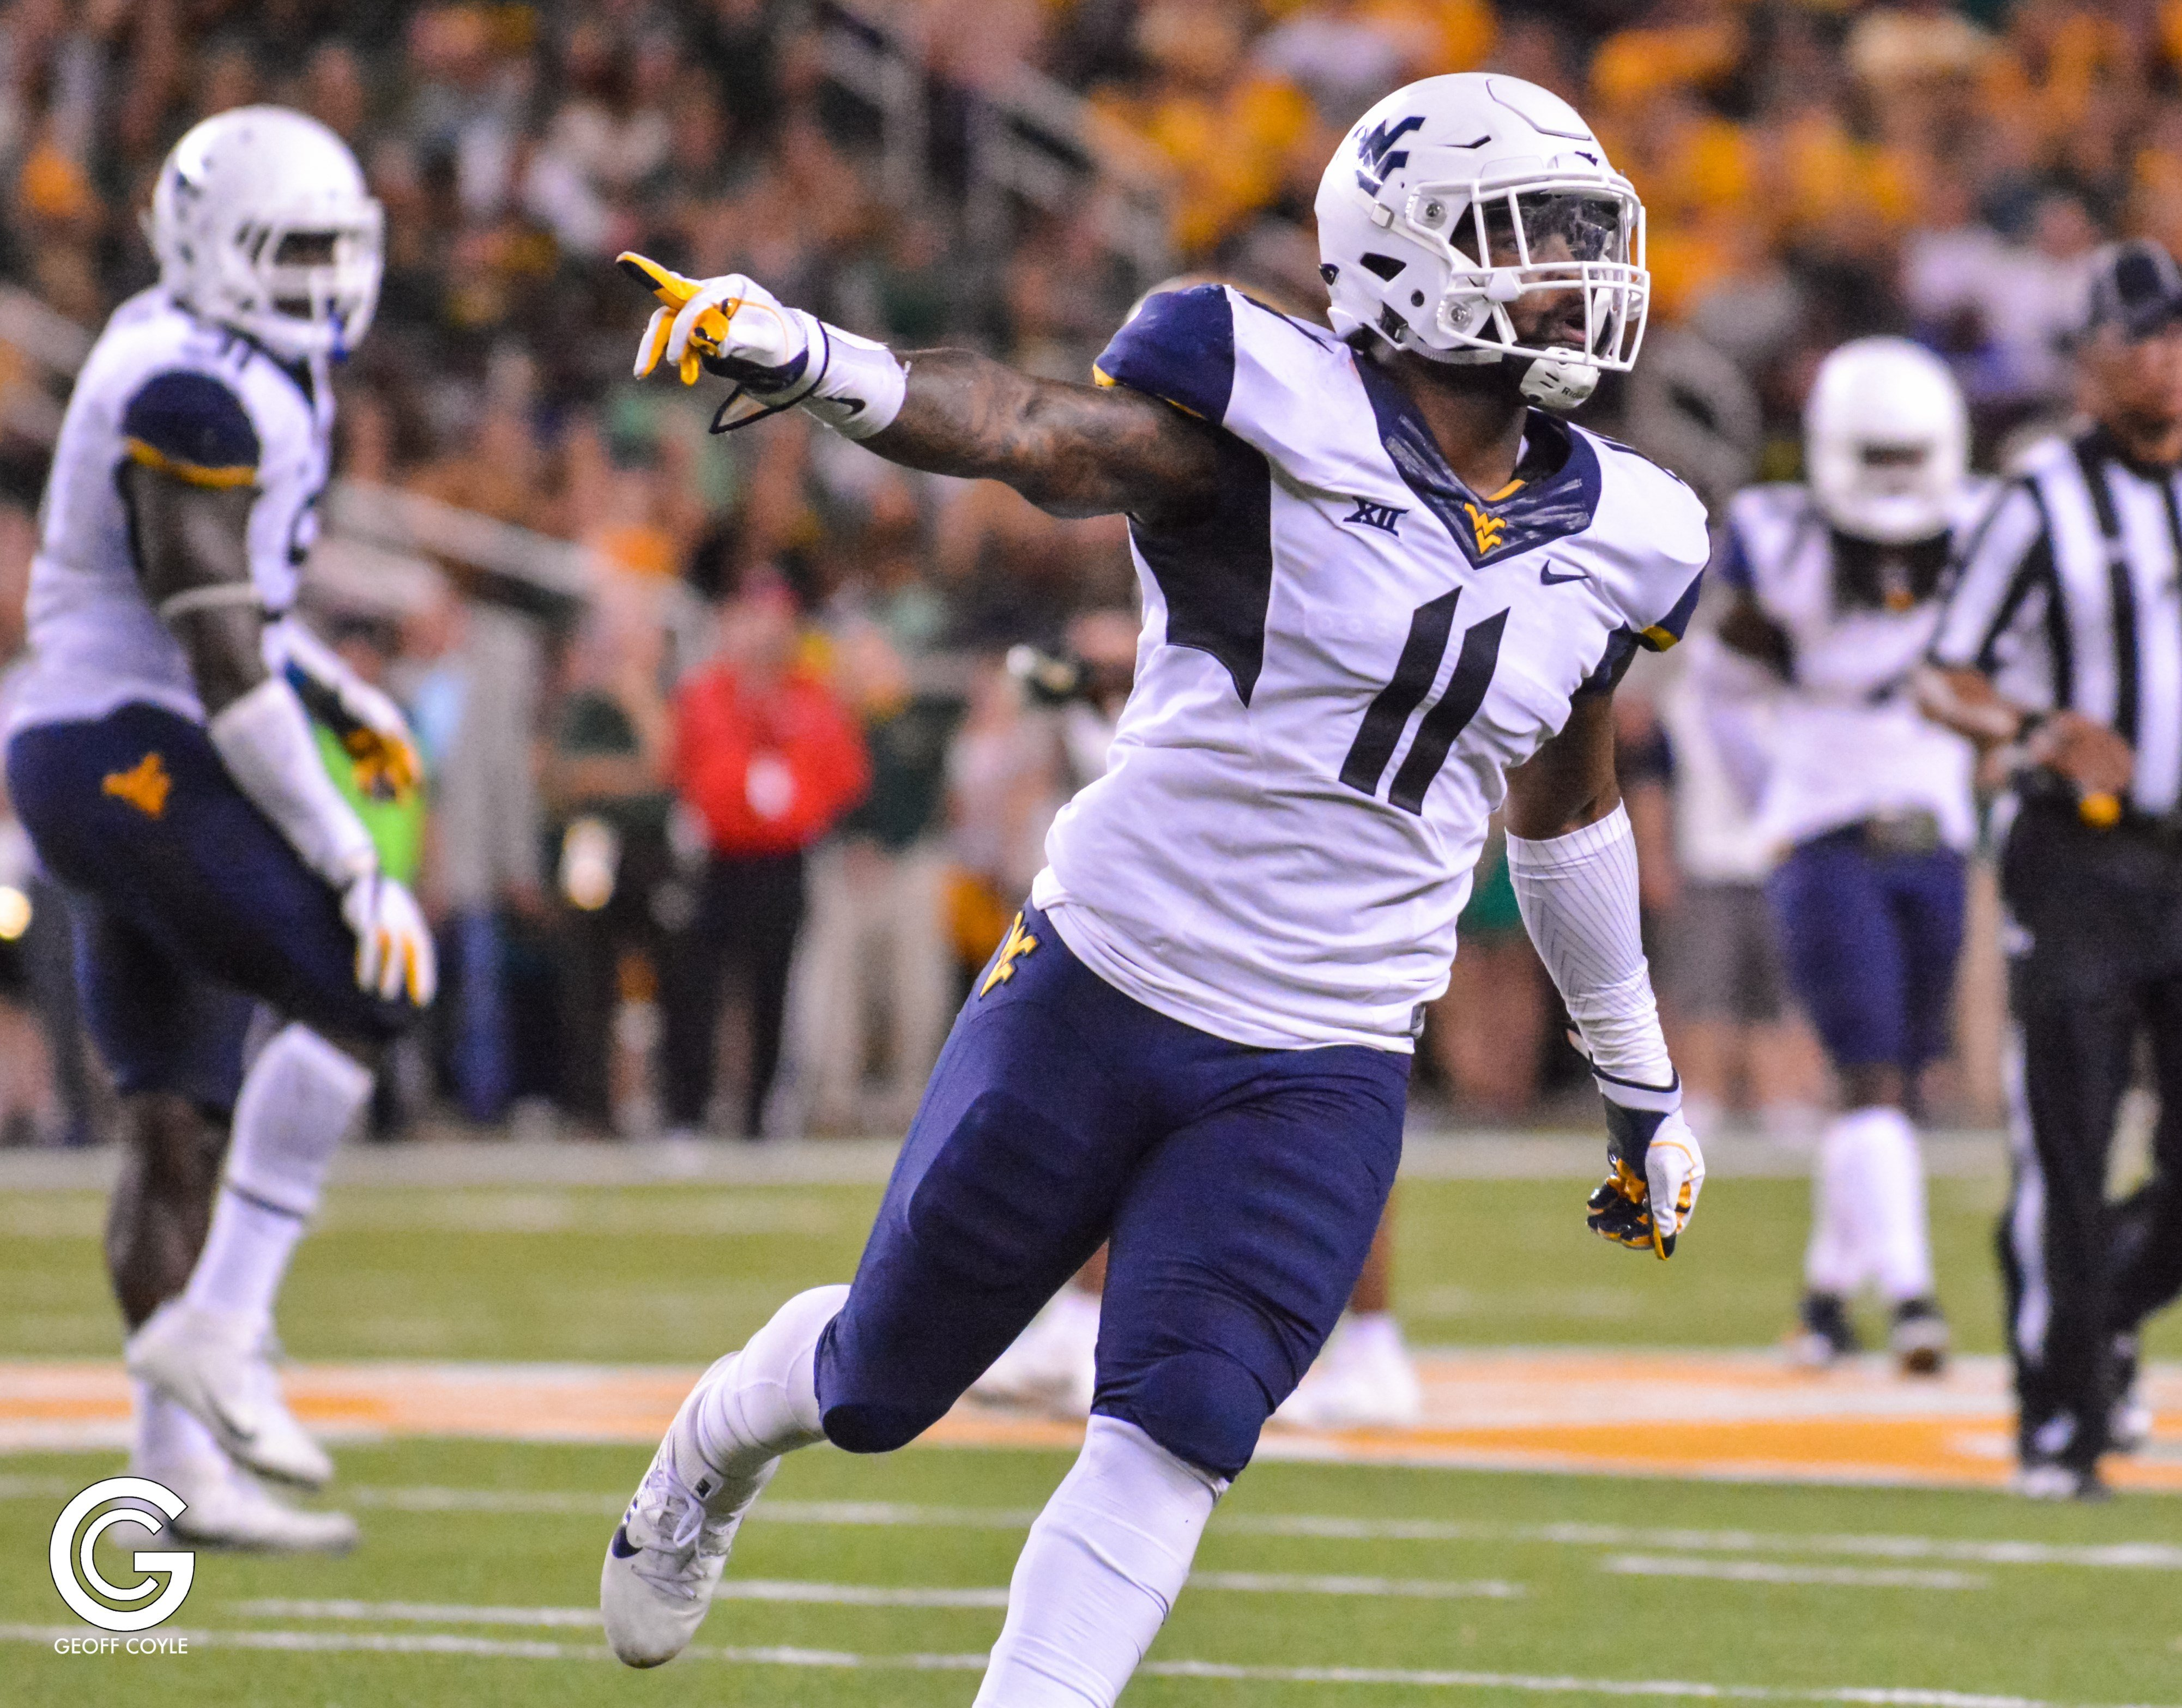 David Long celebrates during a WVU victory over Baylor. (PHOTO: Geoff Coyle)